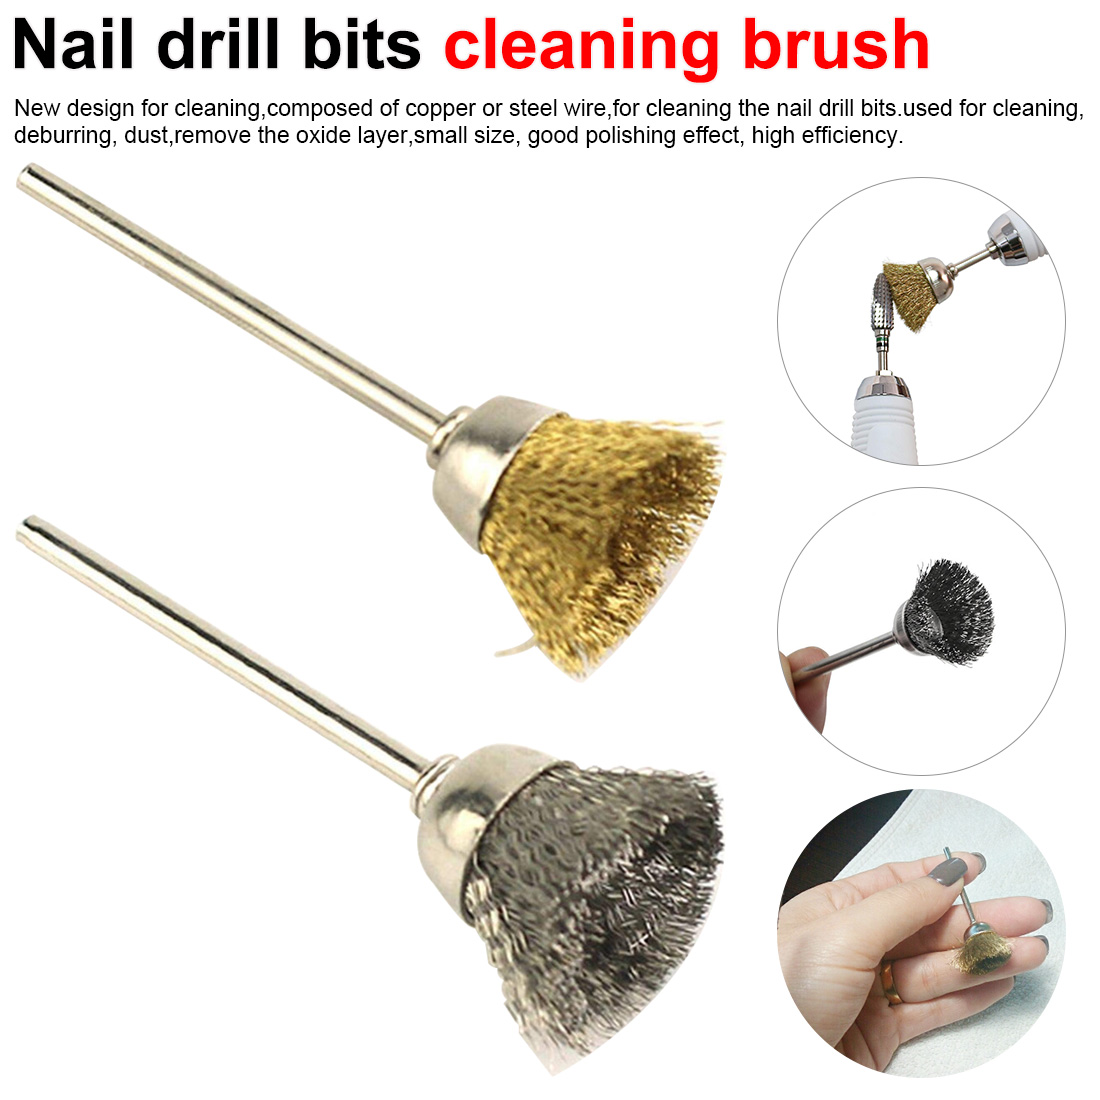 1PCS Nail Art Tools Nail Drill Bits Copper Wire Cleaning Brush Rotary Manicure Electric Drills Accessories